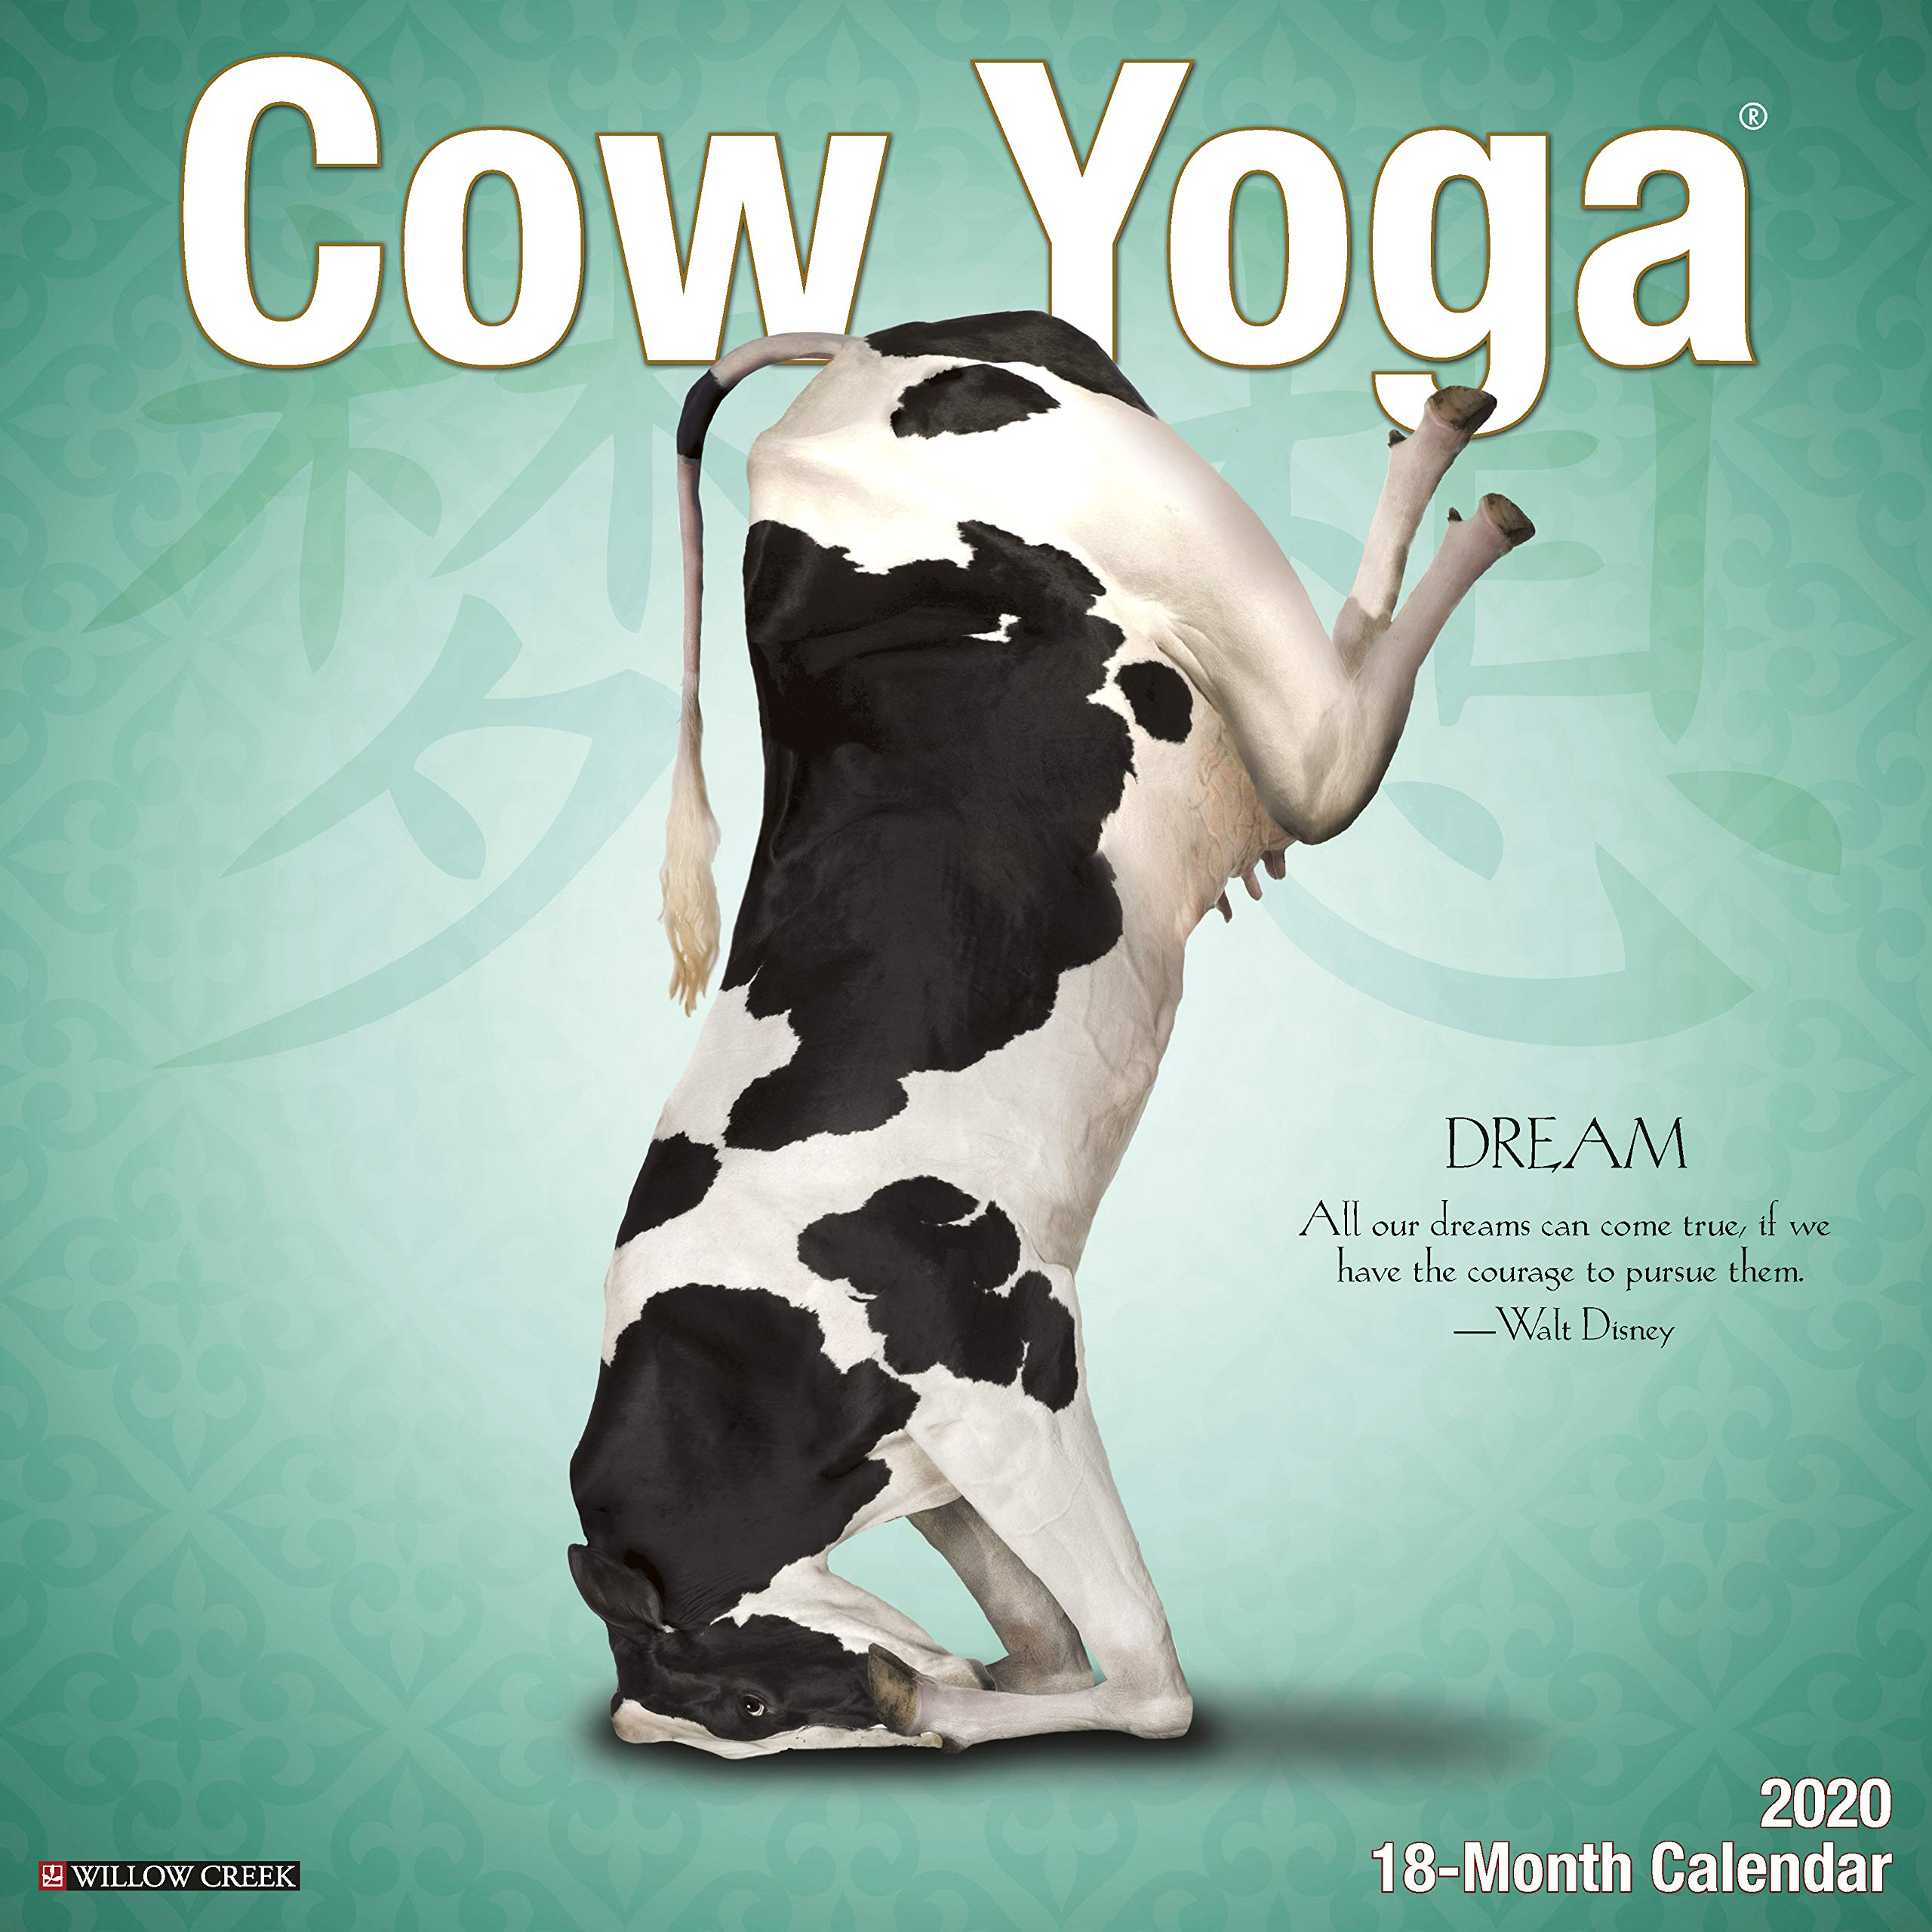 Cow Yoga 2020 Wall Calendar: Amazon.es: Willow Creek Press ...